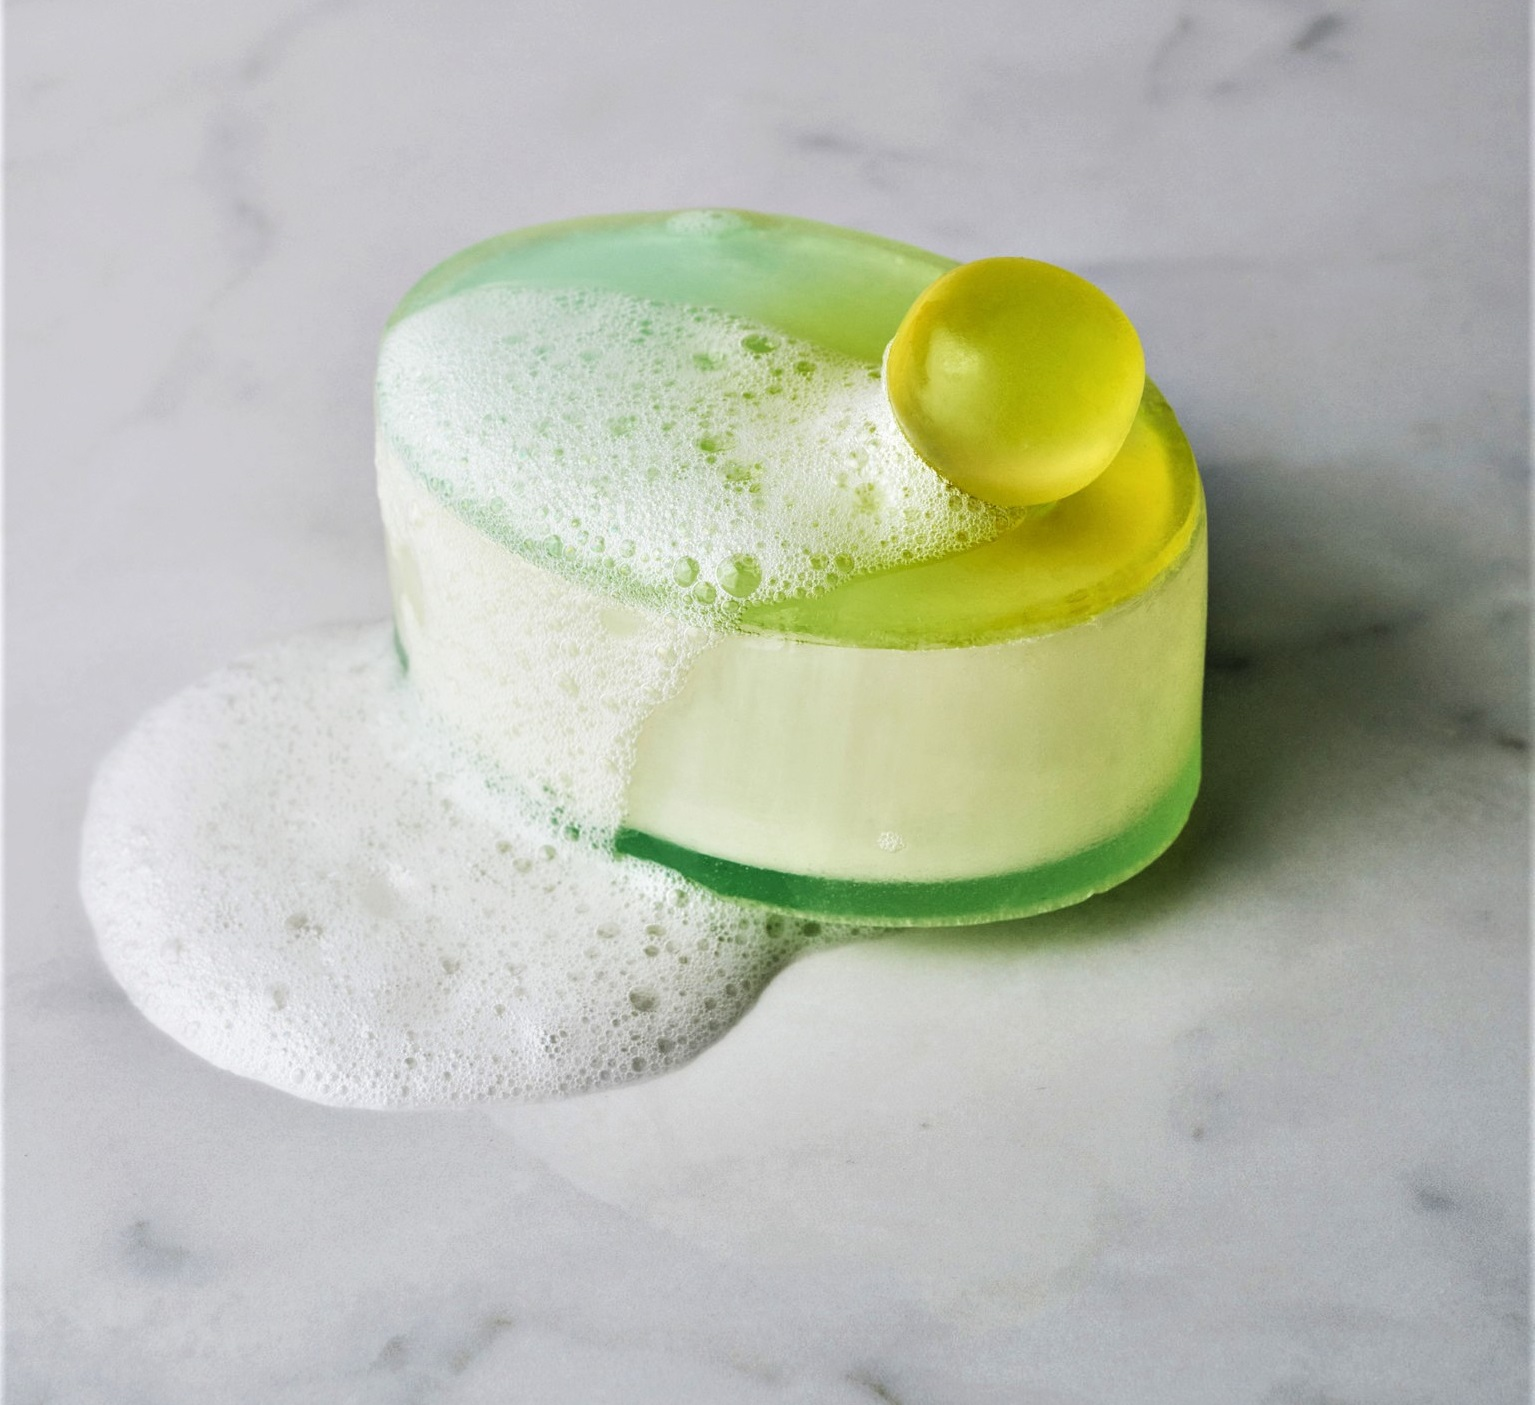 Central Saint Martins Material Futures masters student Mi Zhou creates toiletry packaging made of soap.